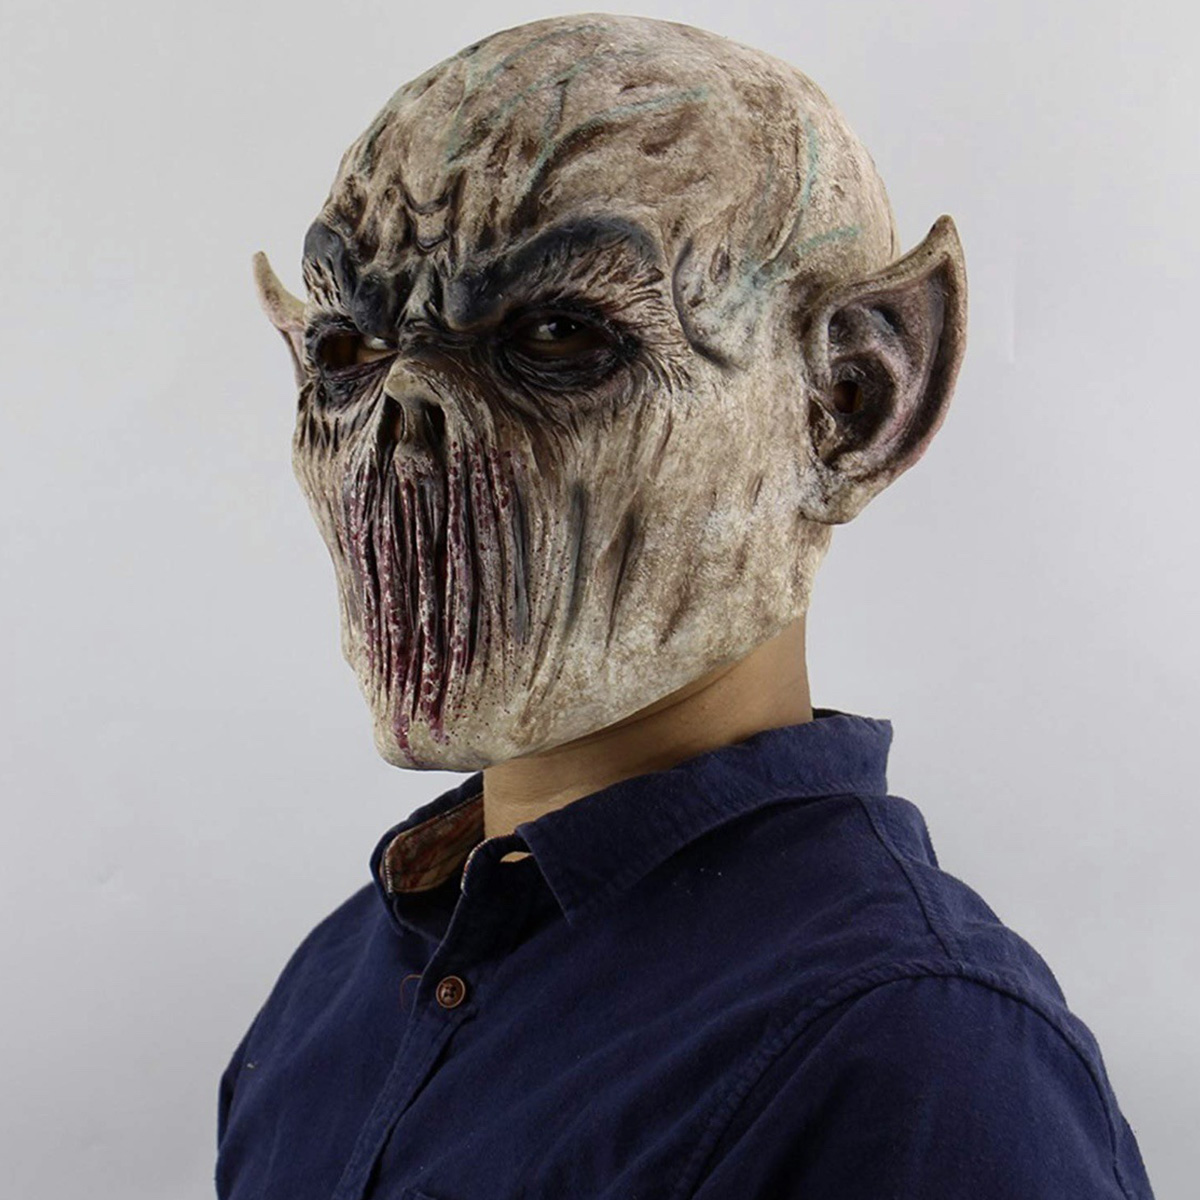 Details about Realistic Zombie Mask Halloween Scary Cosplay Party Costumes  Creepy Masks Hot